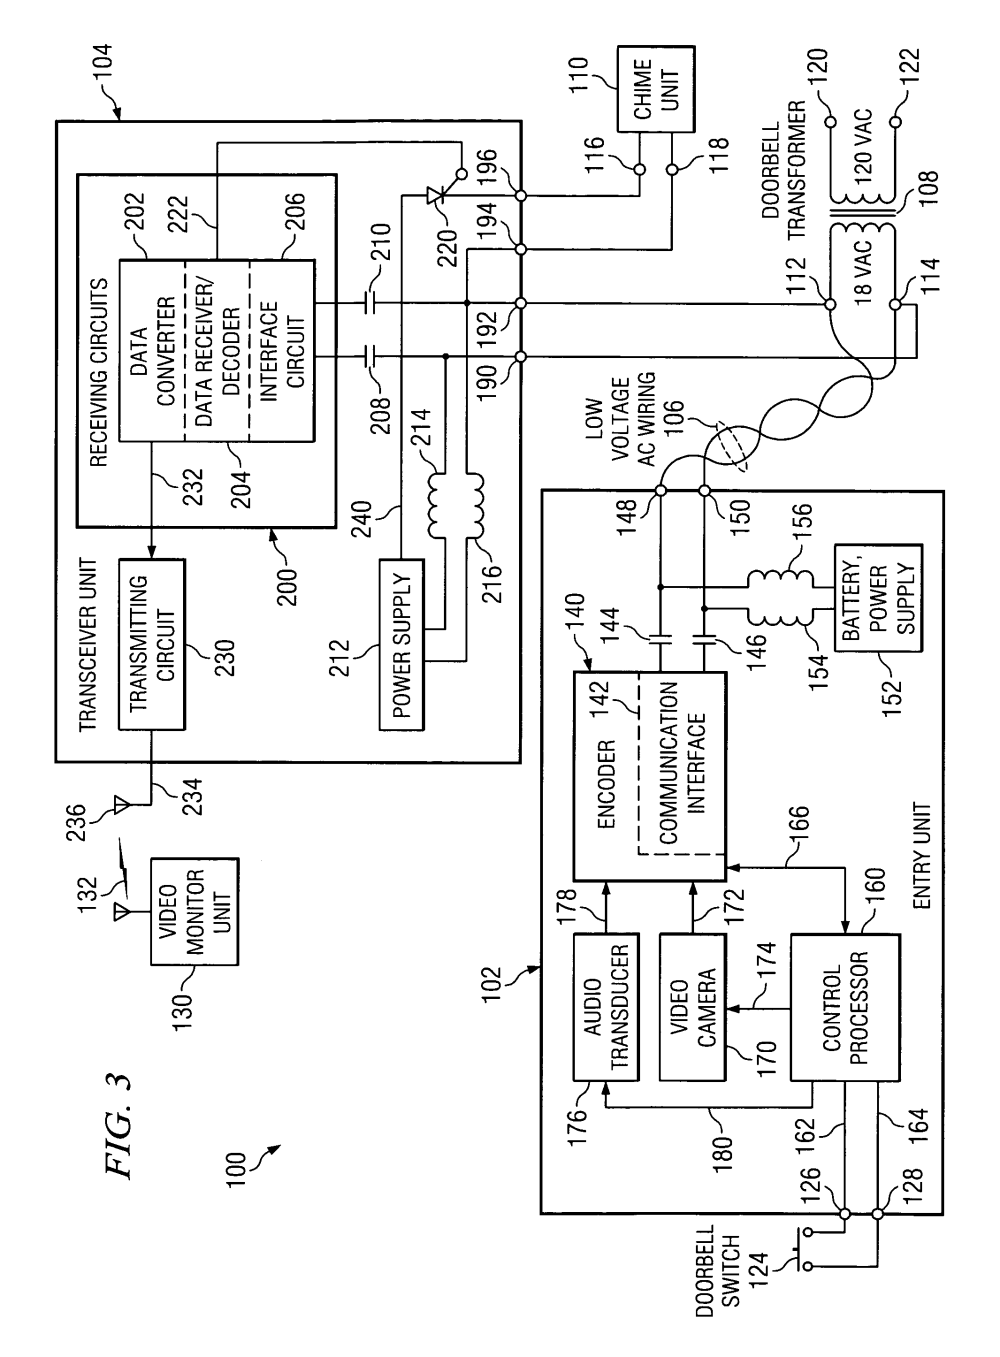 medium resolution of  us07417535 20080826 d00002 patent us7417535 apparatus and method for converting a low typical doorbell wiring diagram